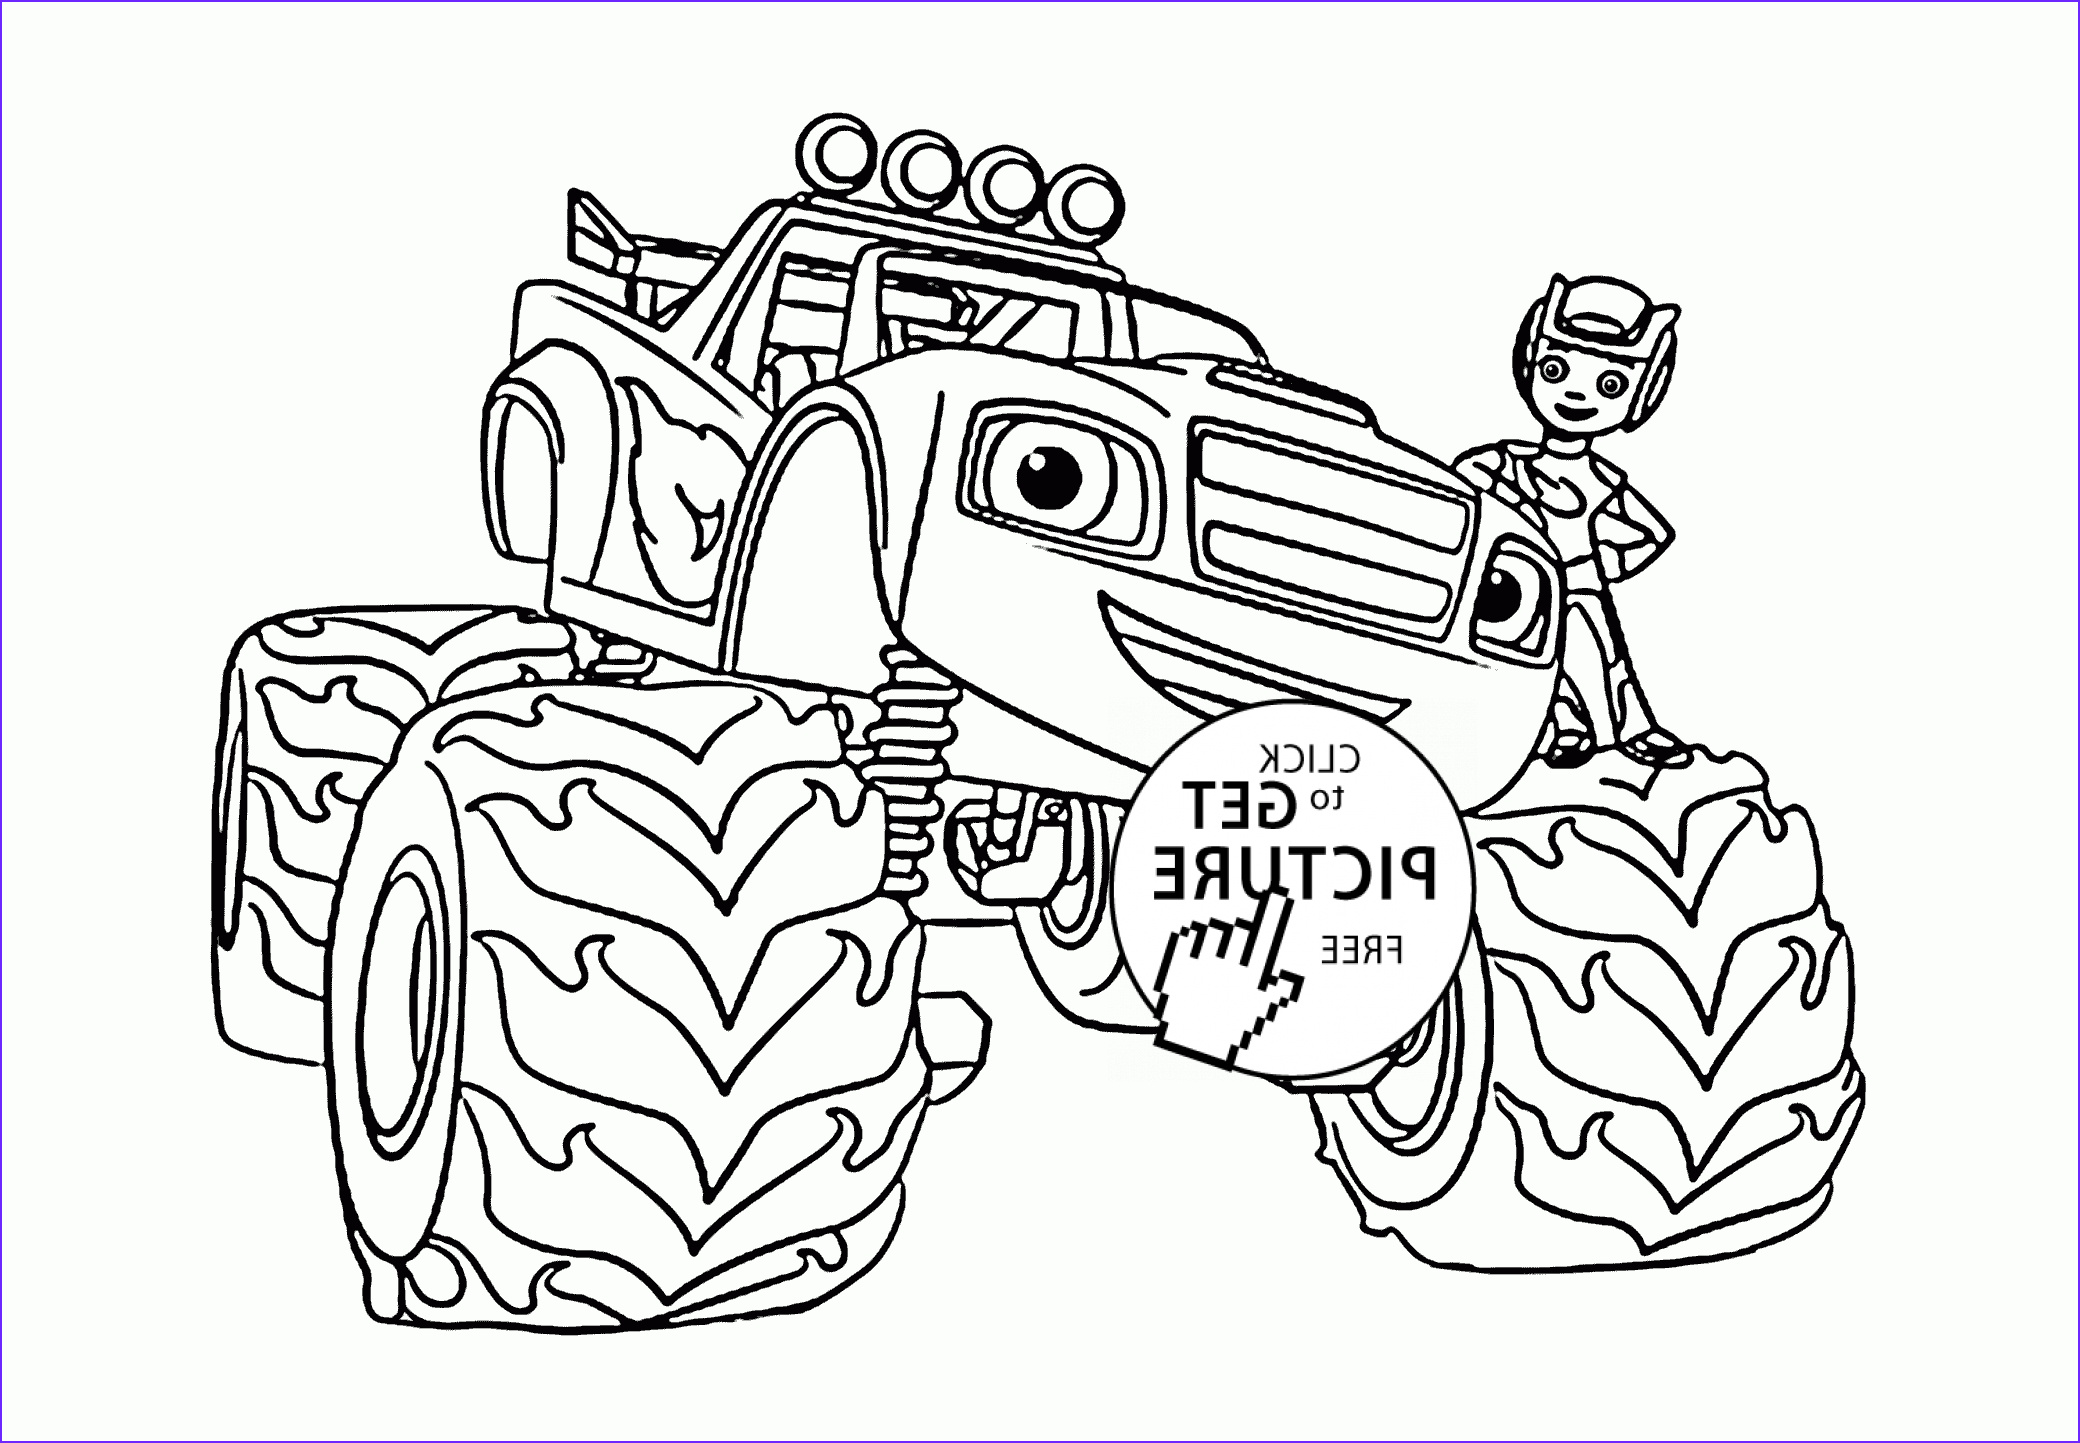 Blaze Coloring Sheet New Photos Gumball Machine Coloring Page at Getdrawings